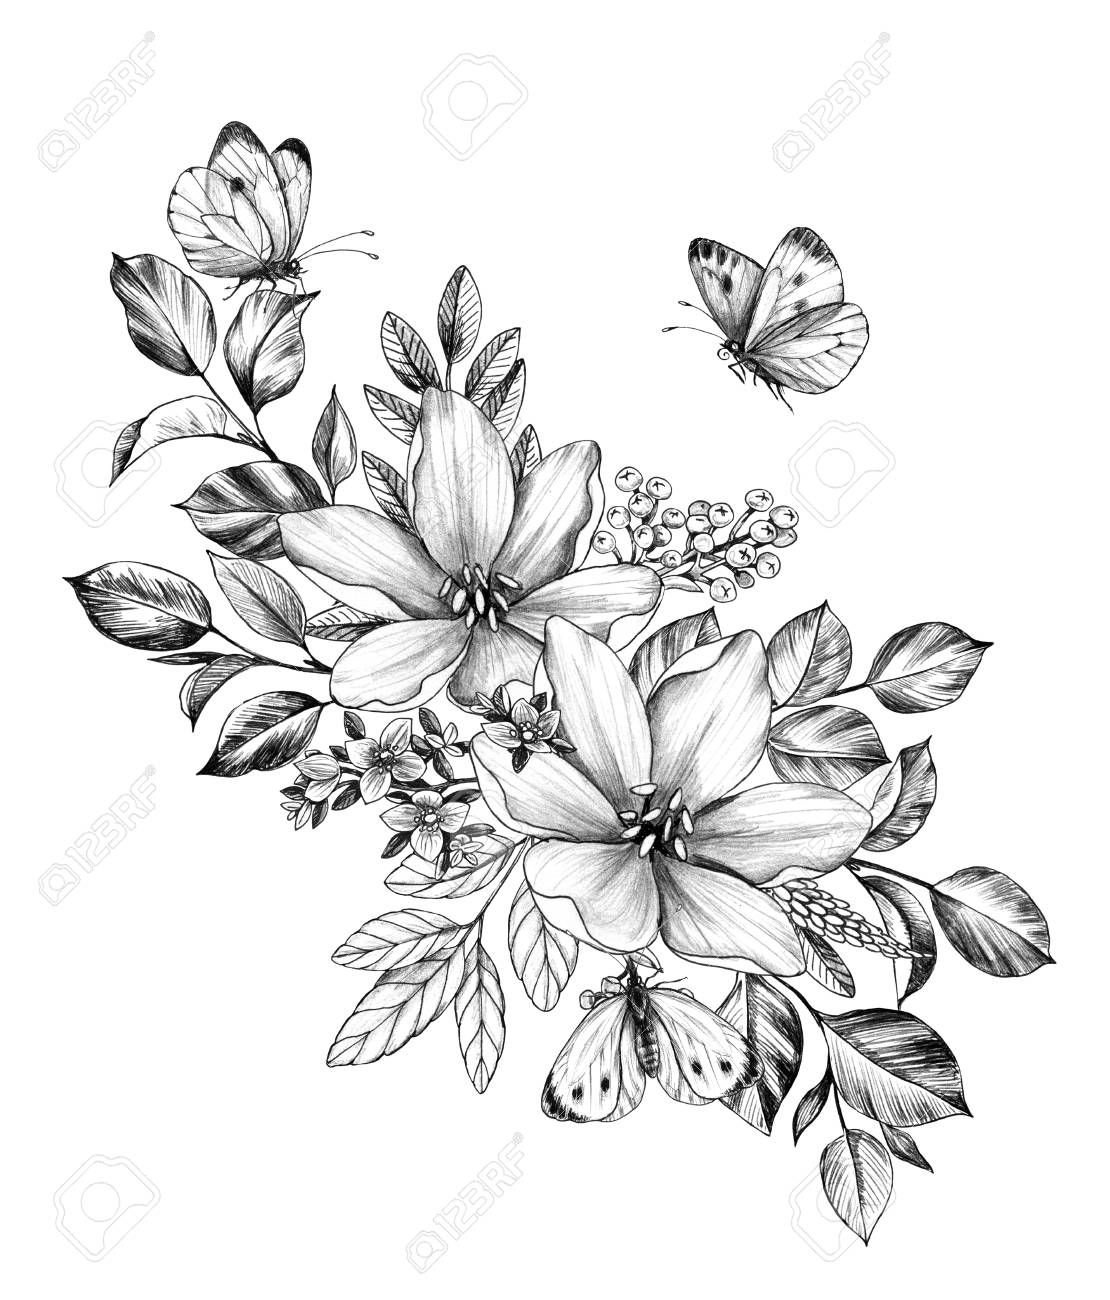 Hand Drawn Floral Bunch With Various Big And Small Flowers And